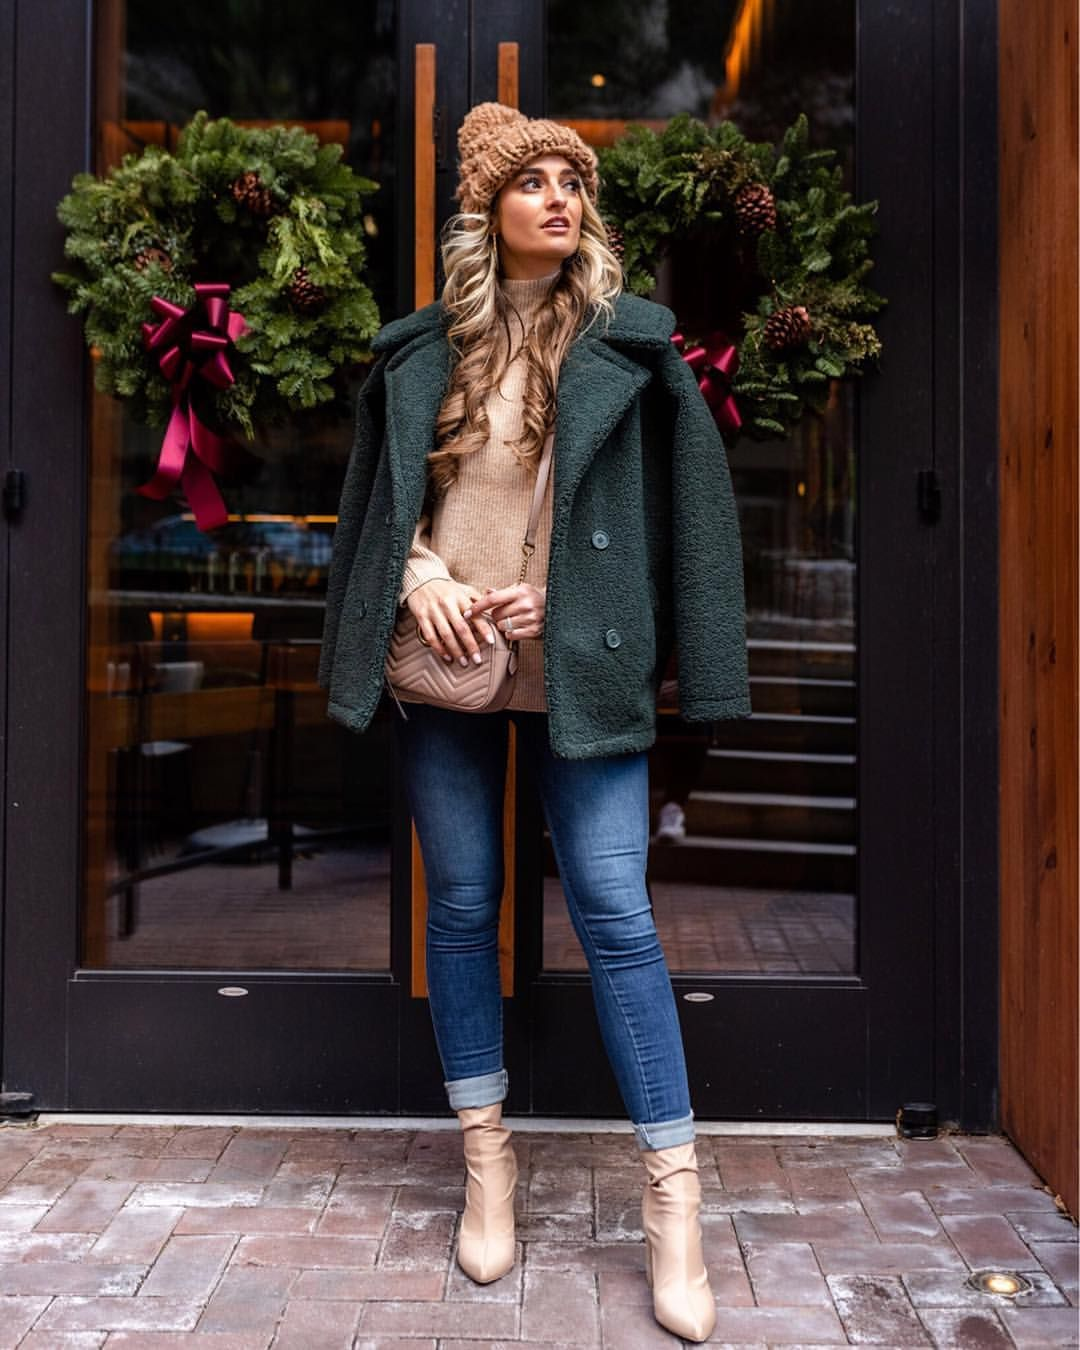 84aeca9ece56 Yes to all the Teddy jackets out there 😍 It s probably one of my favorite  trends this season and holy cow does this jacket keep you warm!!